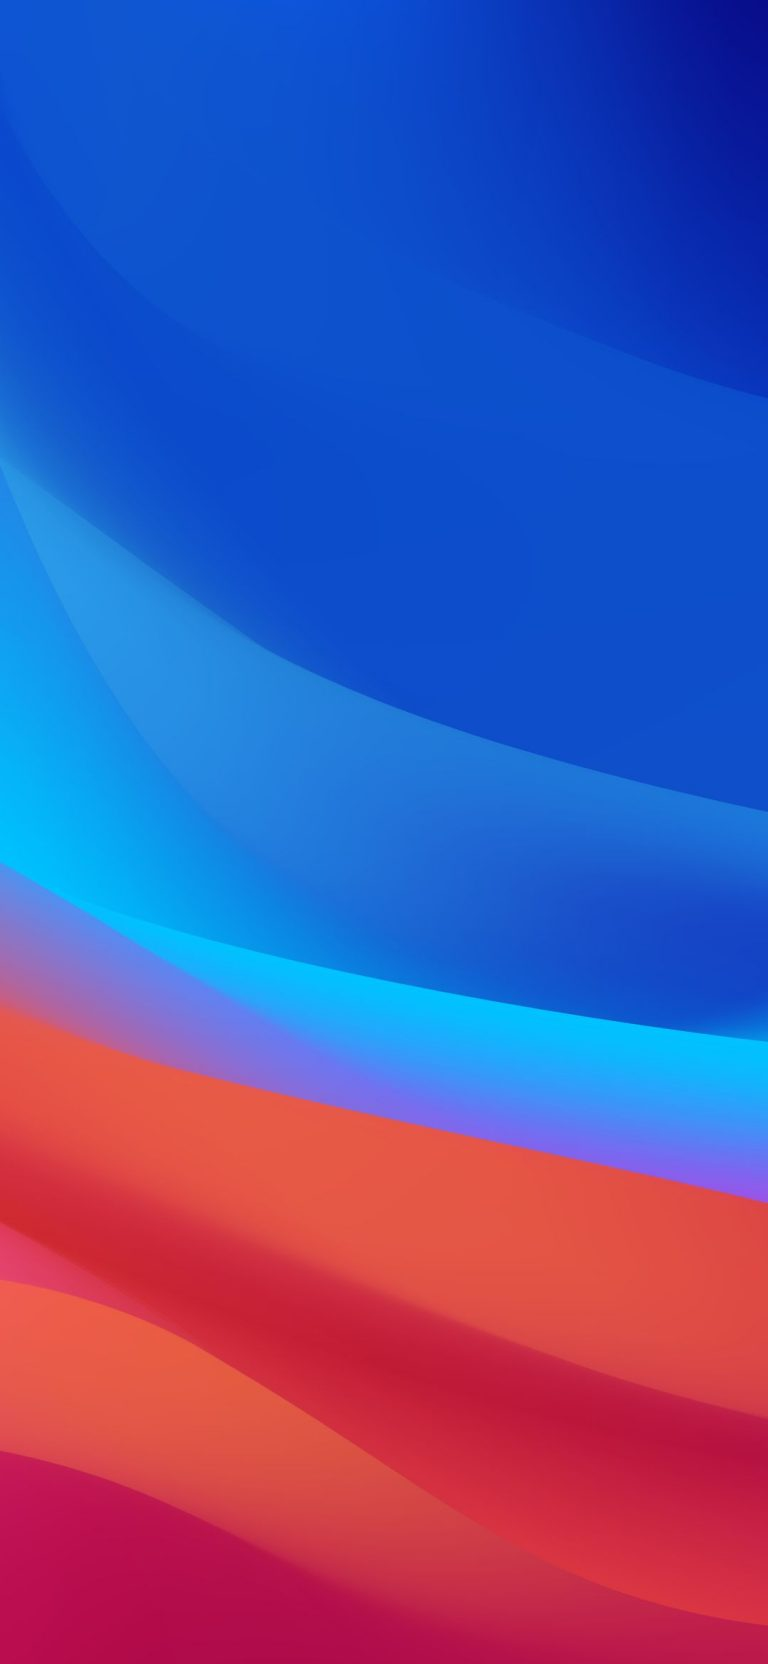 Oppo F9 Pro Stock Wallpaper 003 1080x2340 768x1664